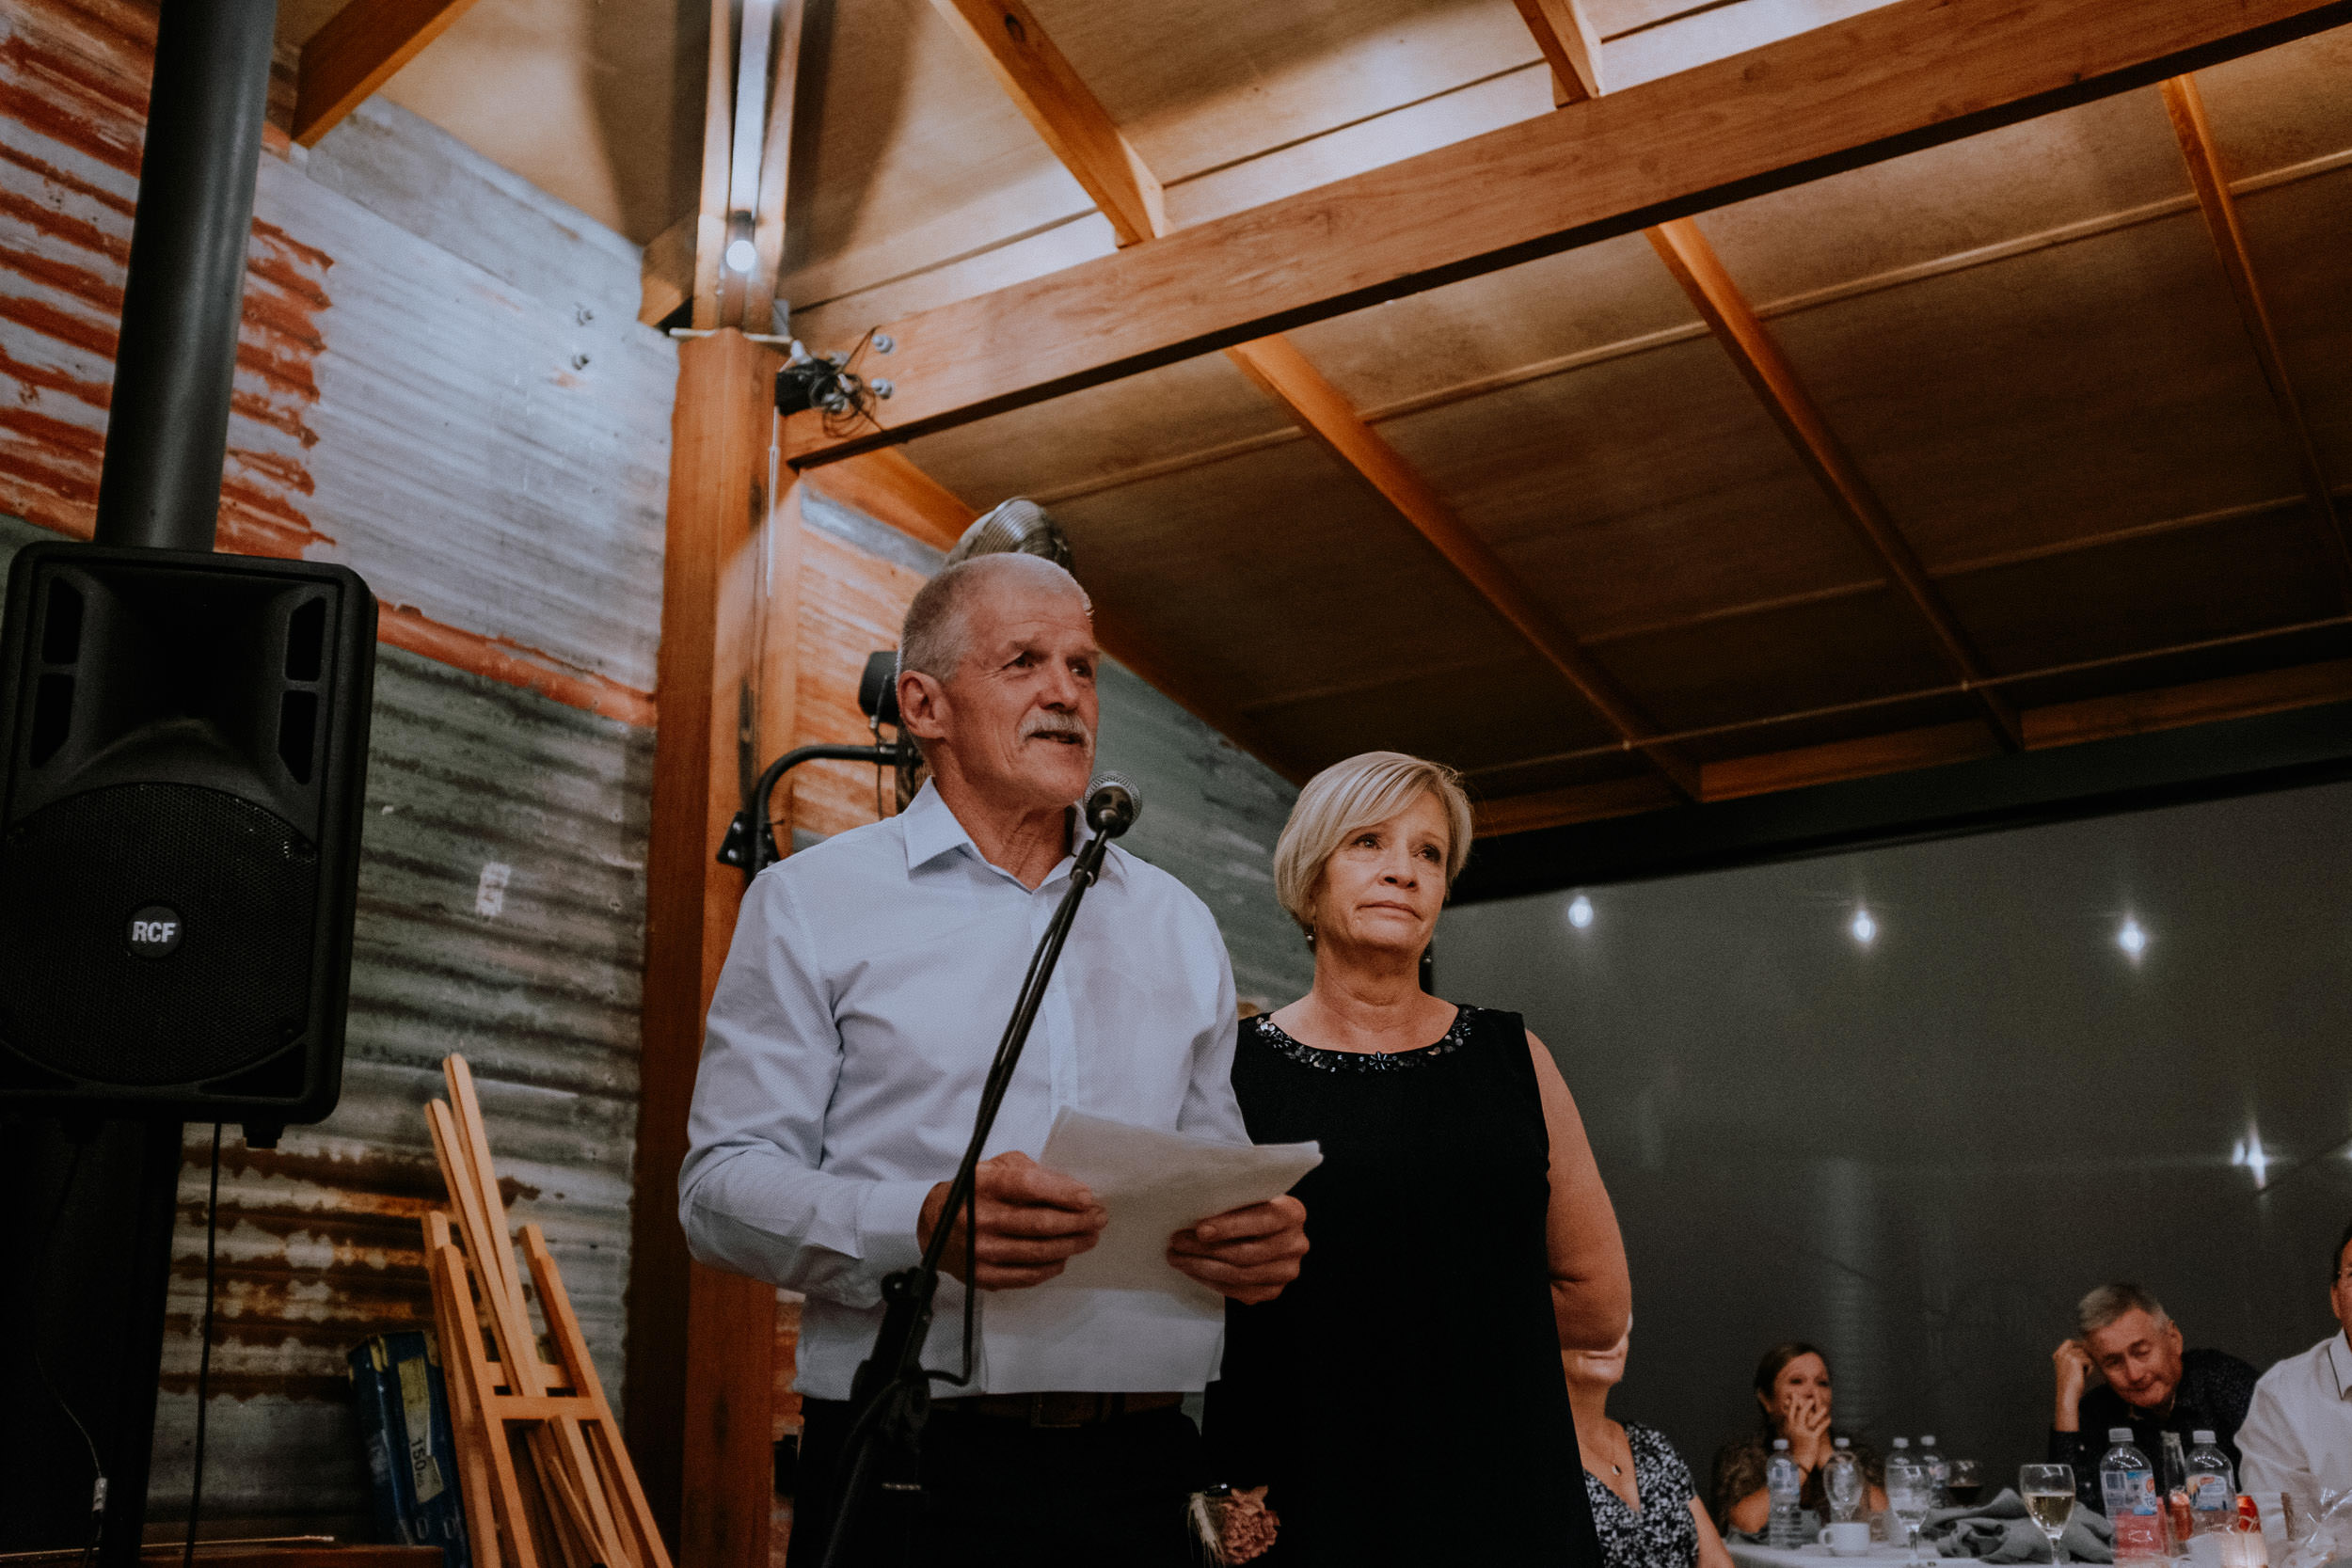 Parents of the groom speeches at wedding reception inside the Pavilion at Seclusions Blue Mountains